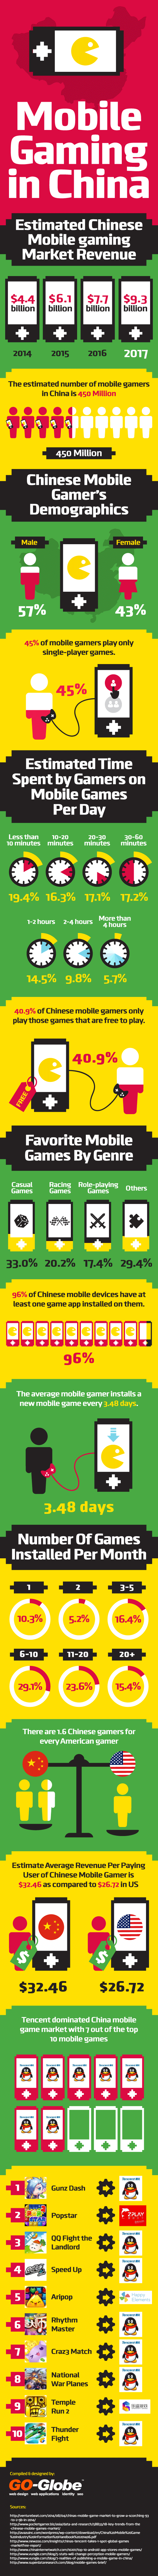 Mobile Gaming Figures China